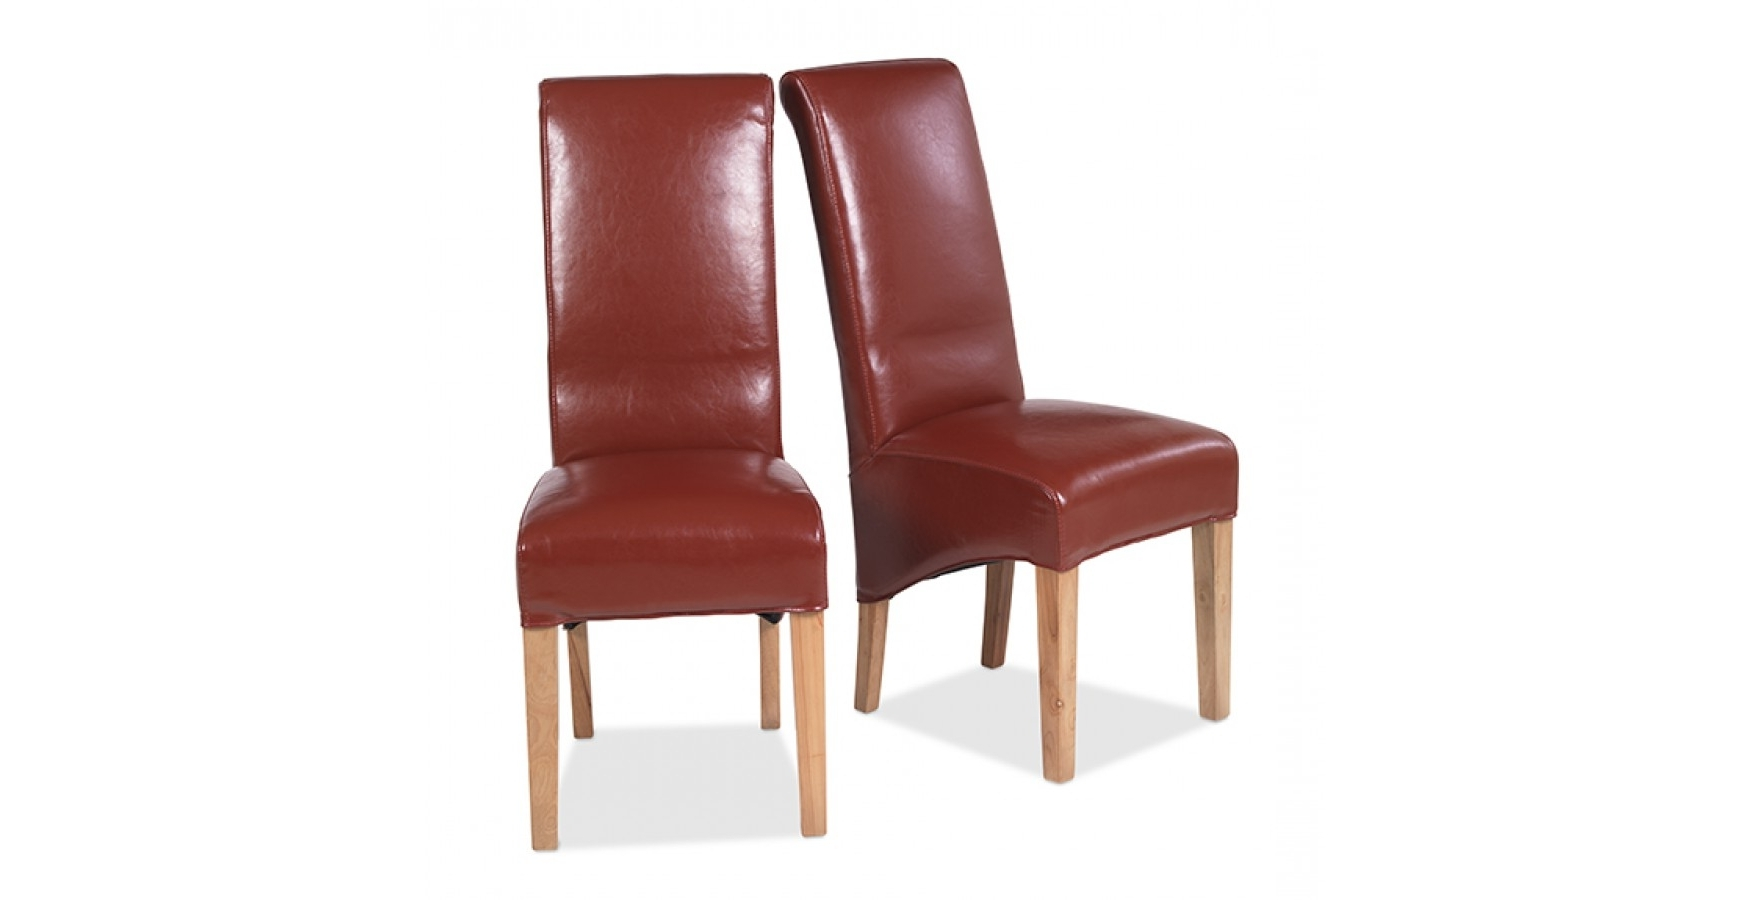 Red Leather Dining Chairs For Most Recent Cuba Oak Bonded Leather Dining Chairs Red – Pair – Lifestyle (View 17 of 25)